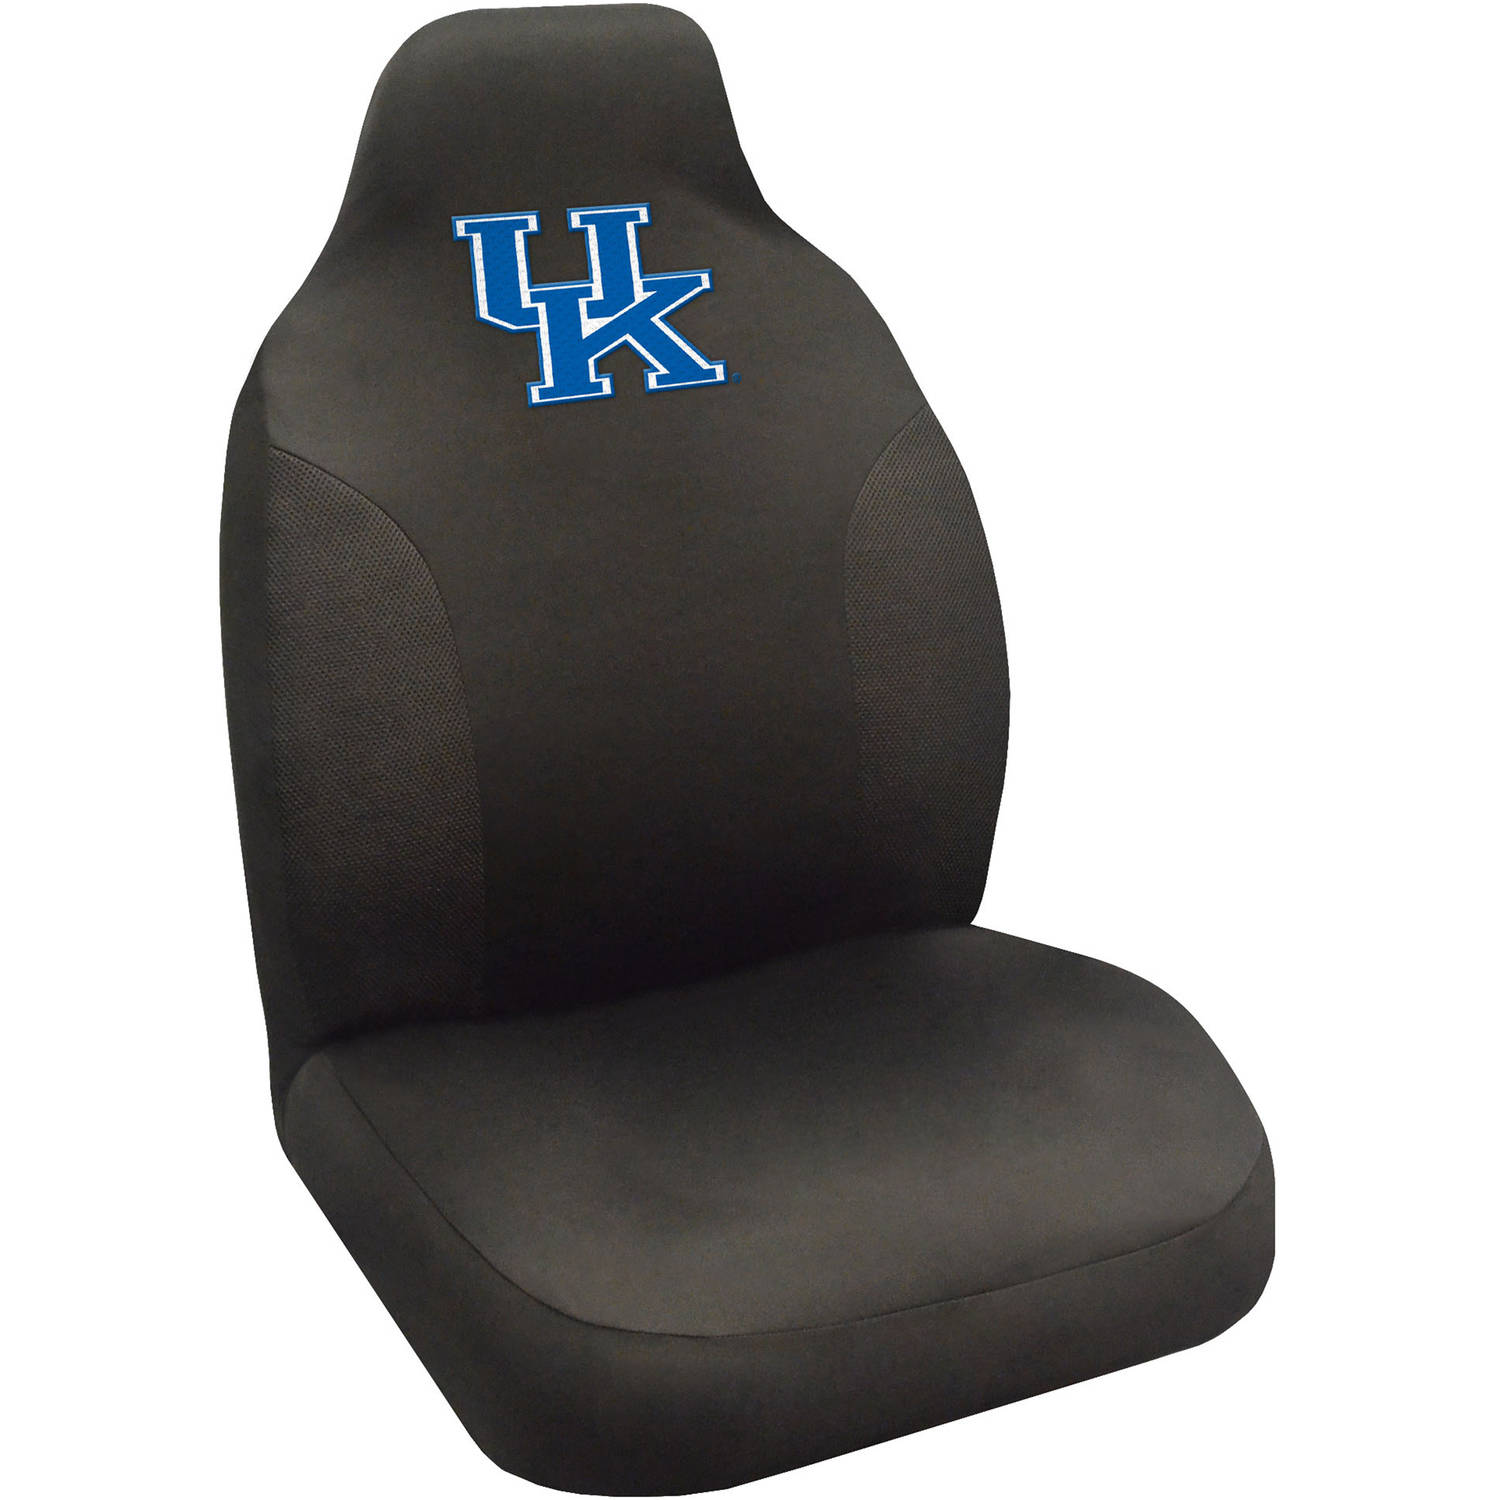 University of Kentucky Seat Covers